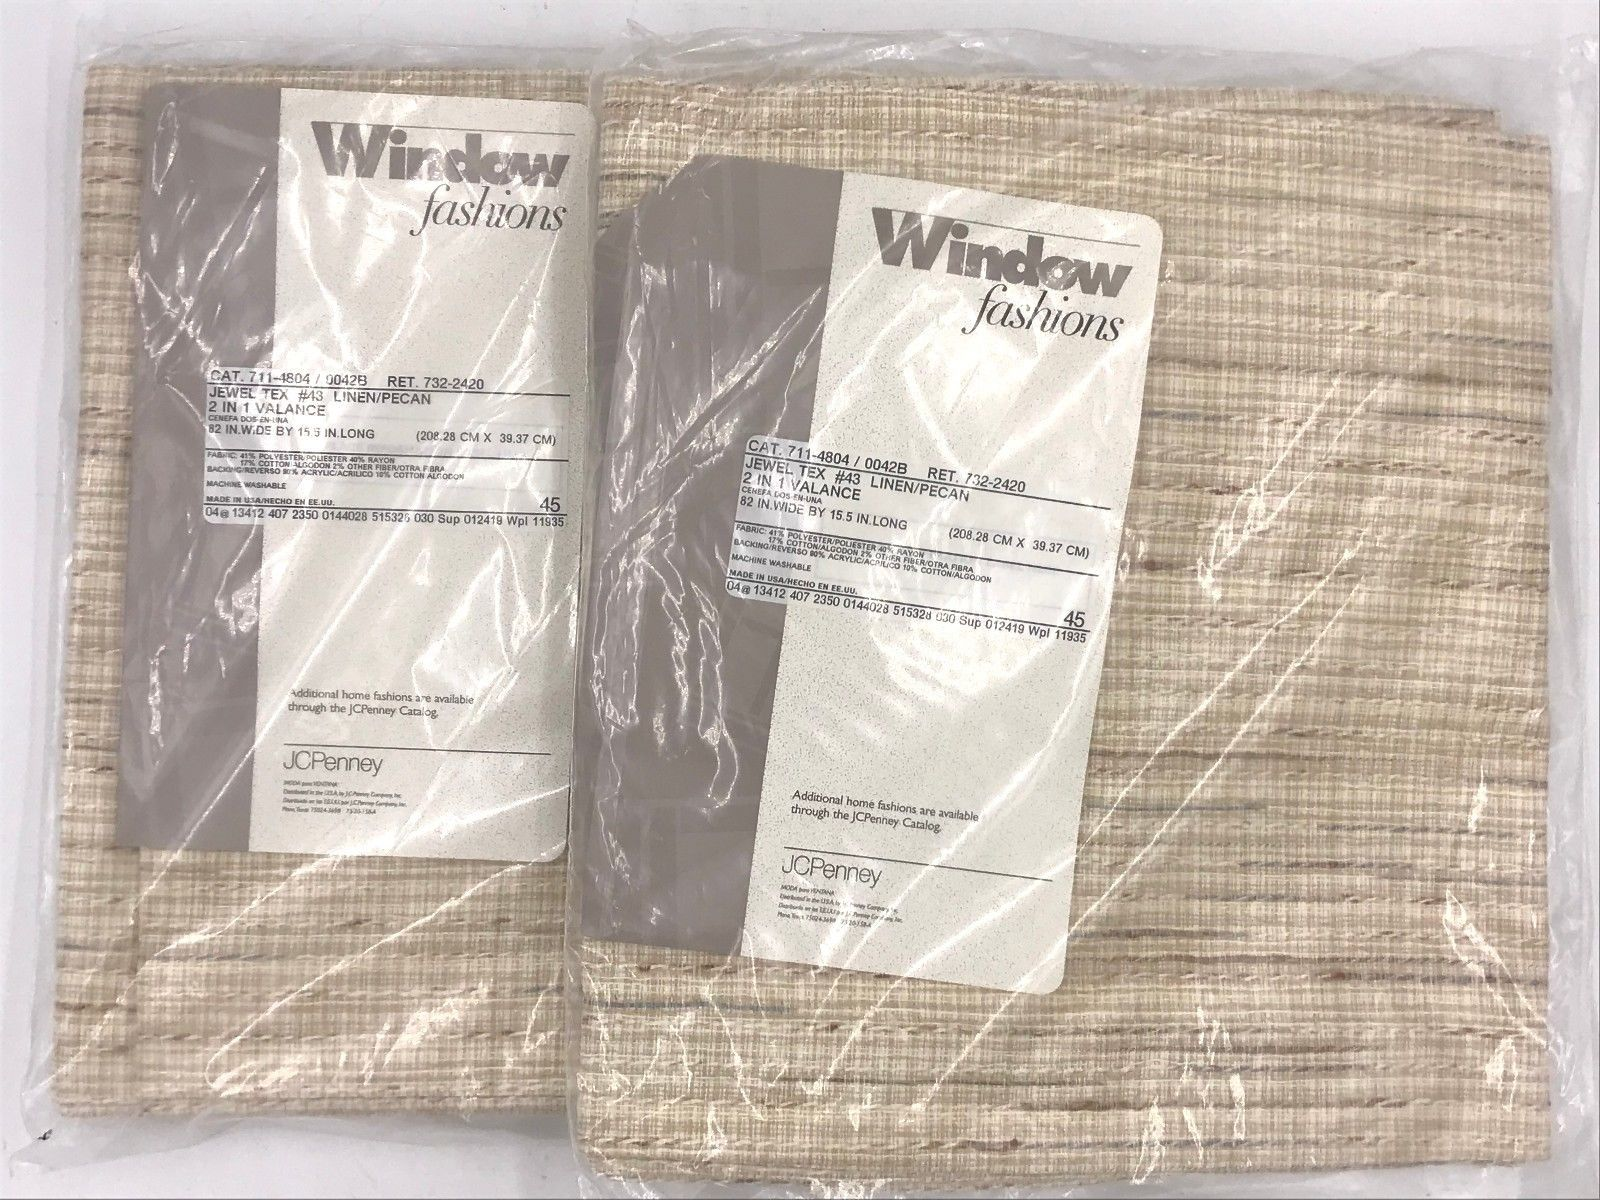 JCPenney Window Fashions Jewel Tex Linen Pecan Pole Top 2 Valances 82x15.5 K1